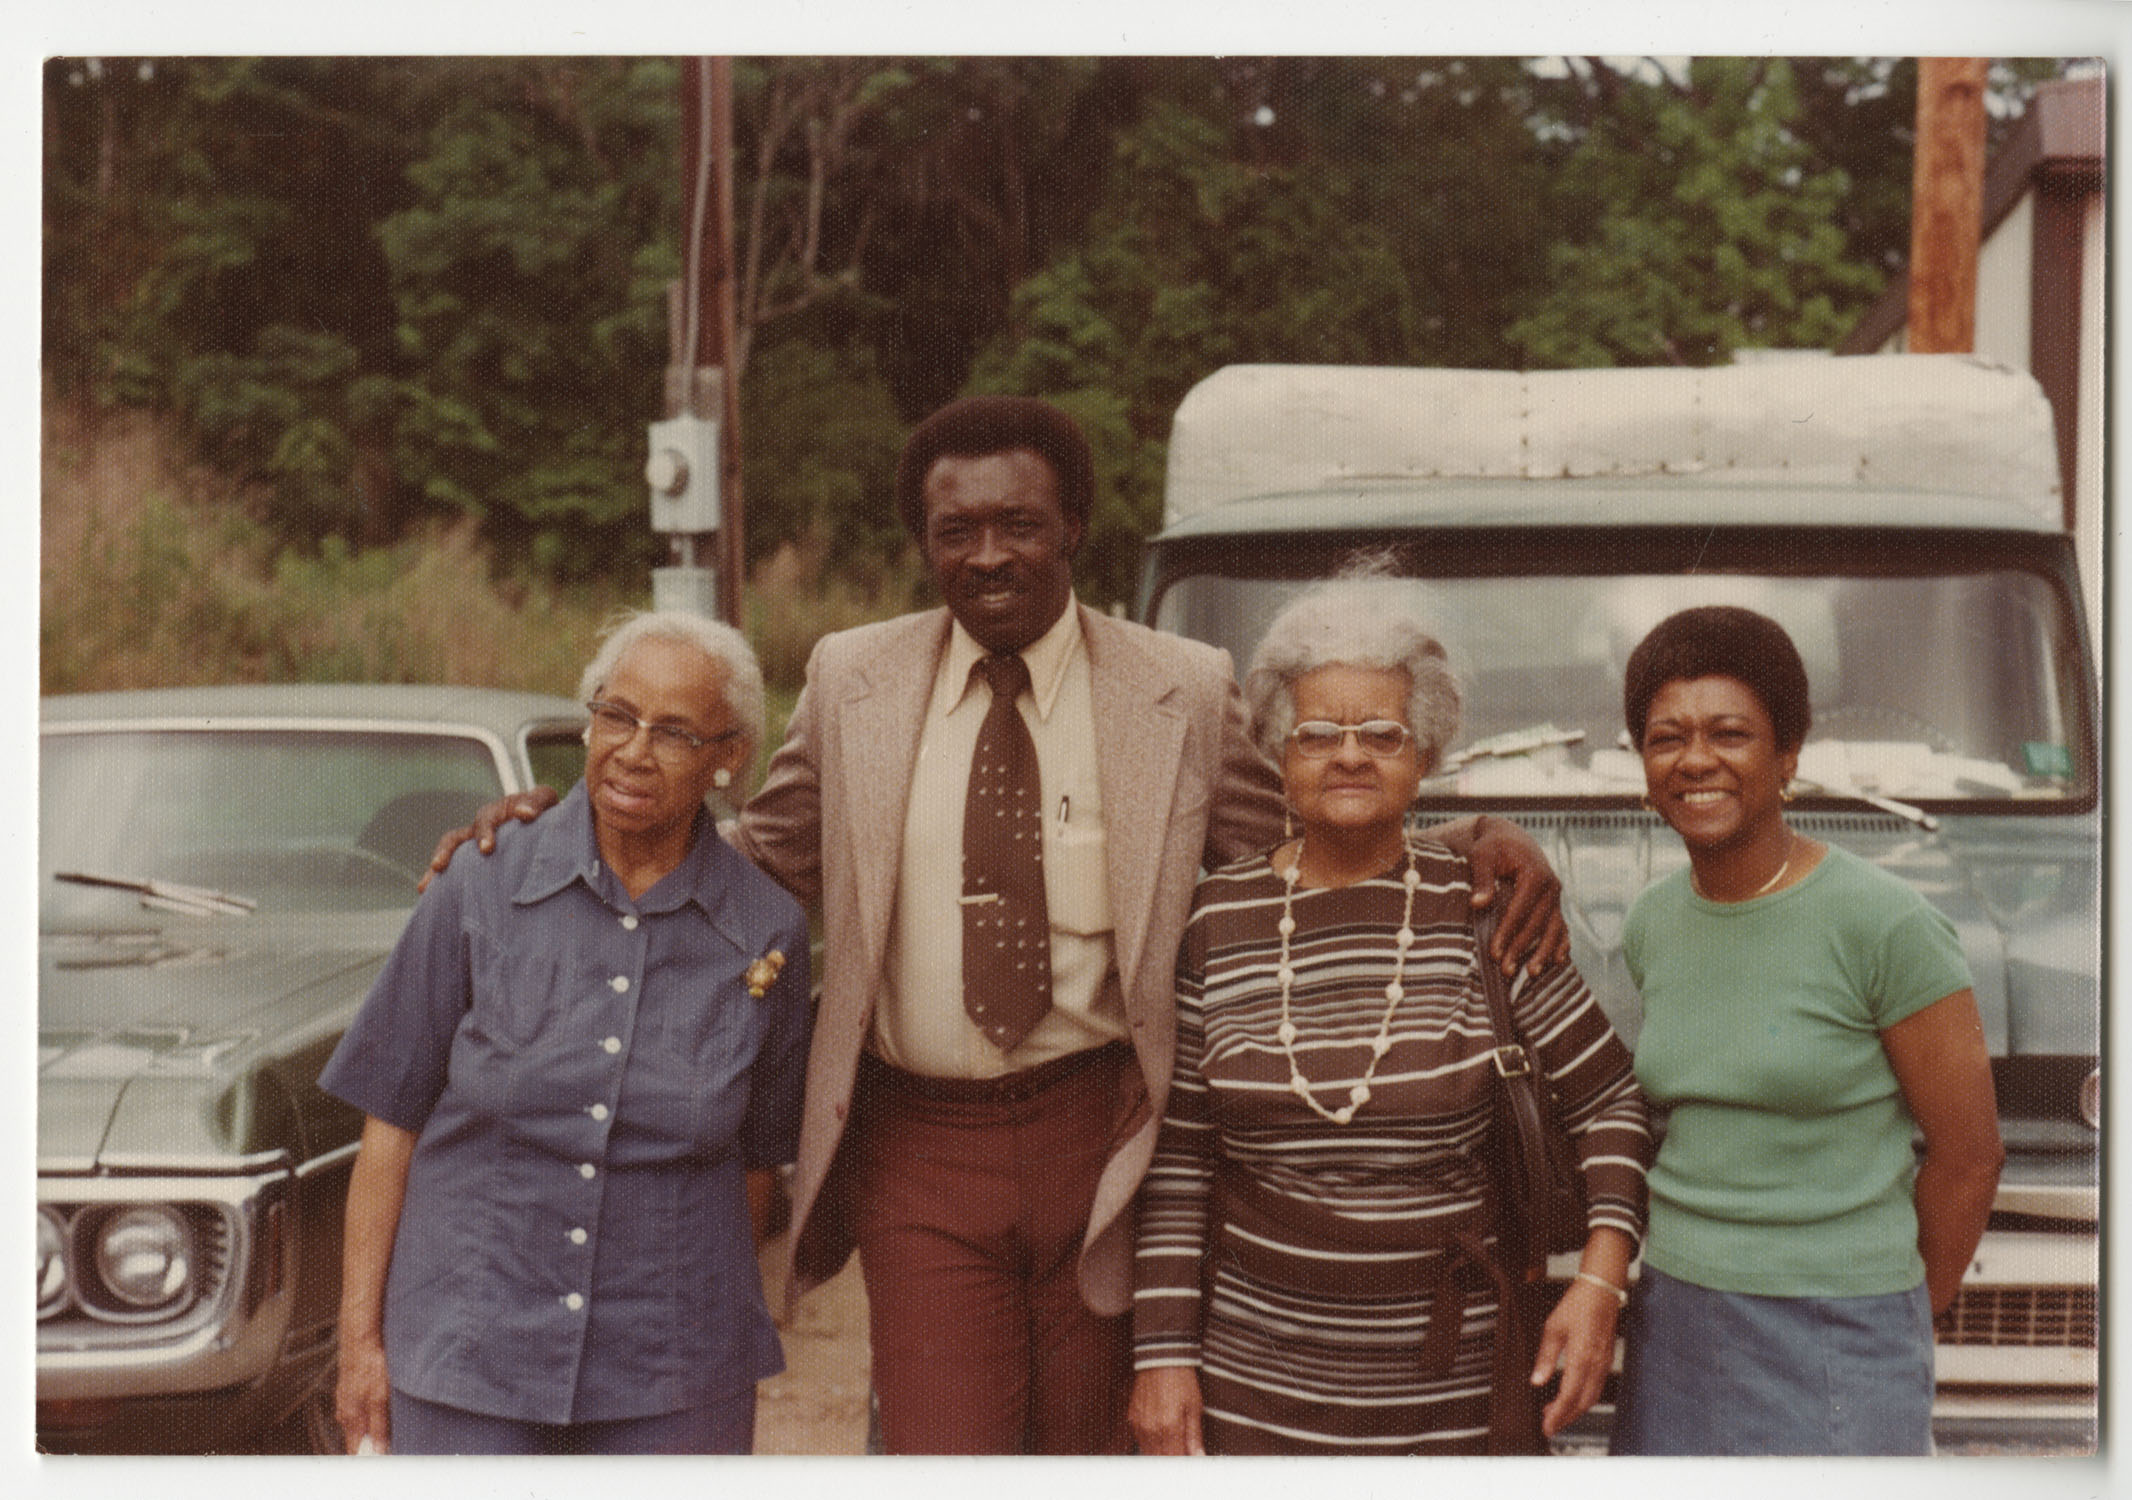 Septima P. Clark with Others, 1976